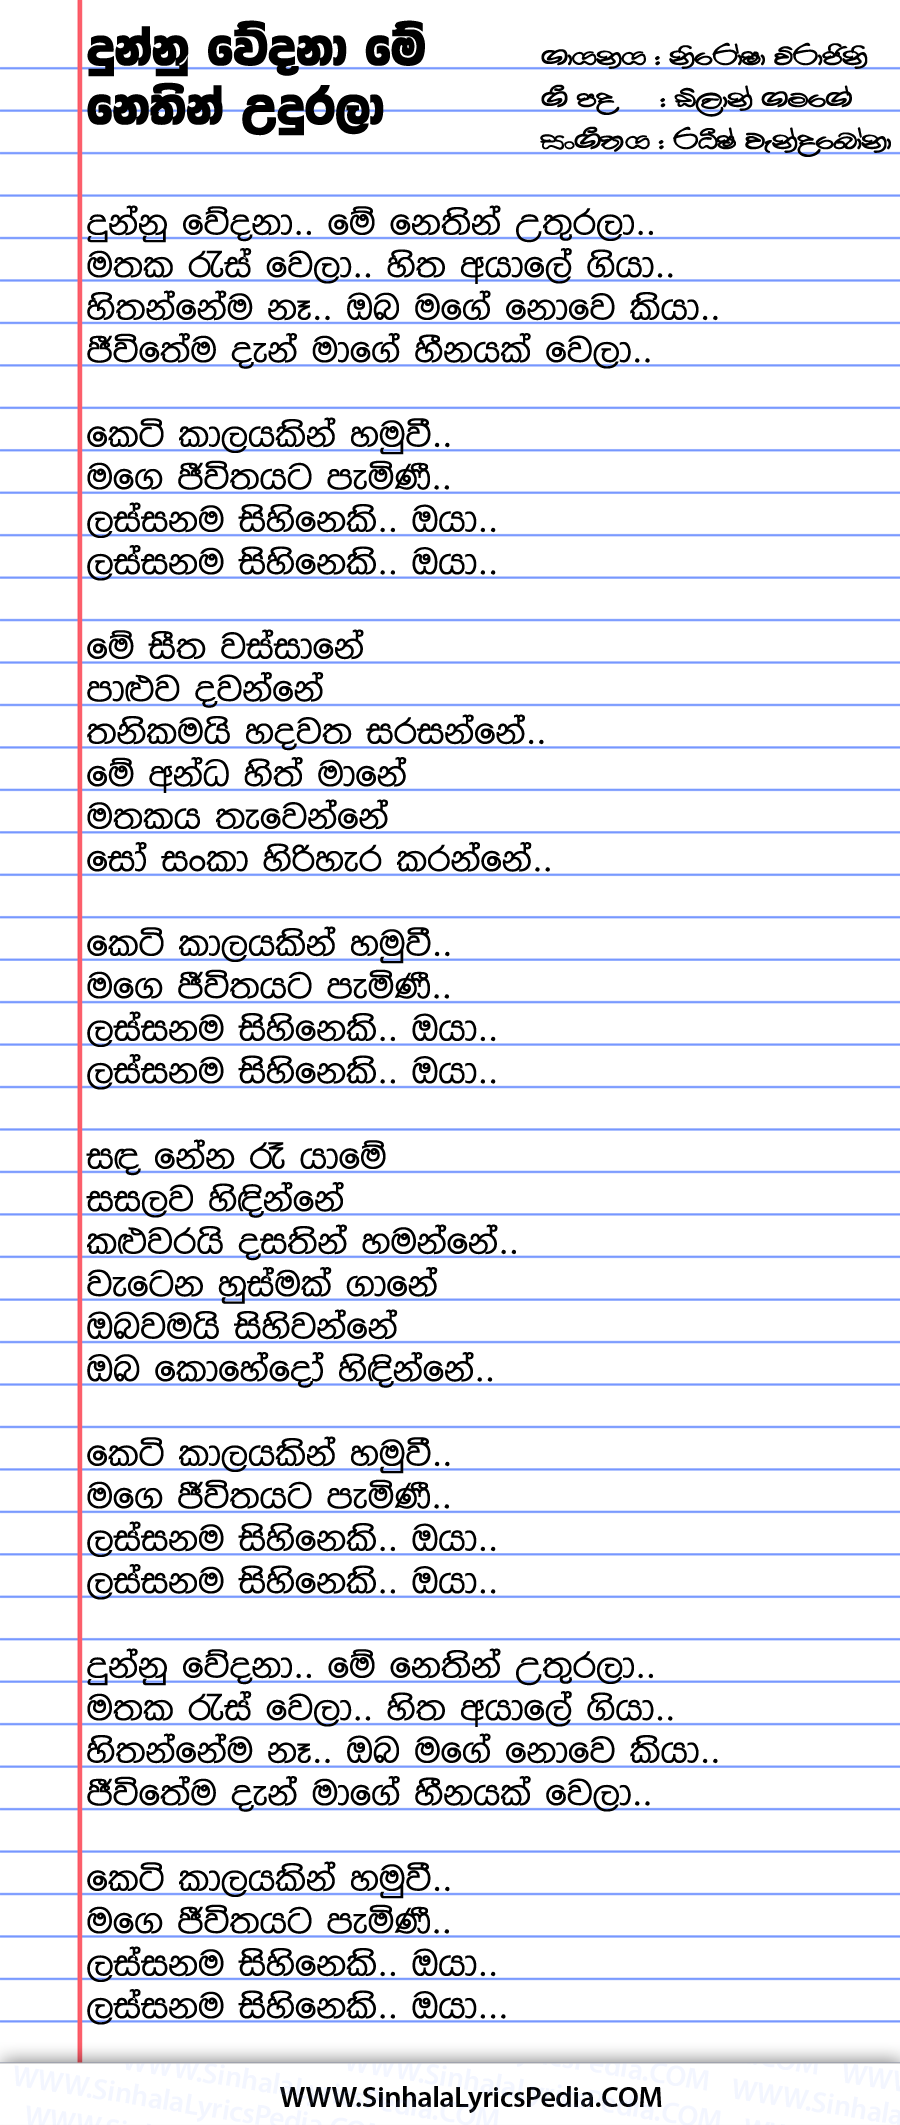 Dunnu Wedana Me Nethin Uthurala Song Lyrics